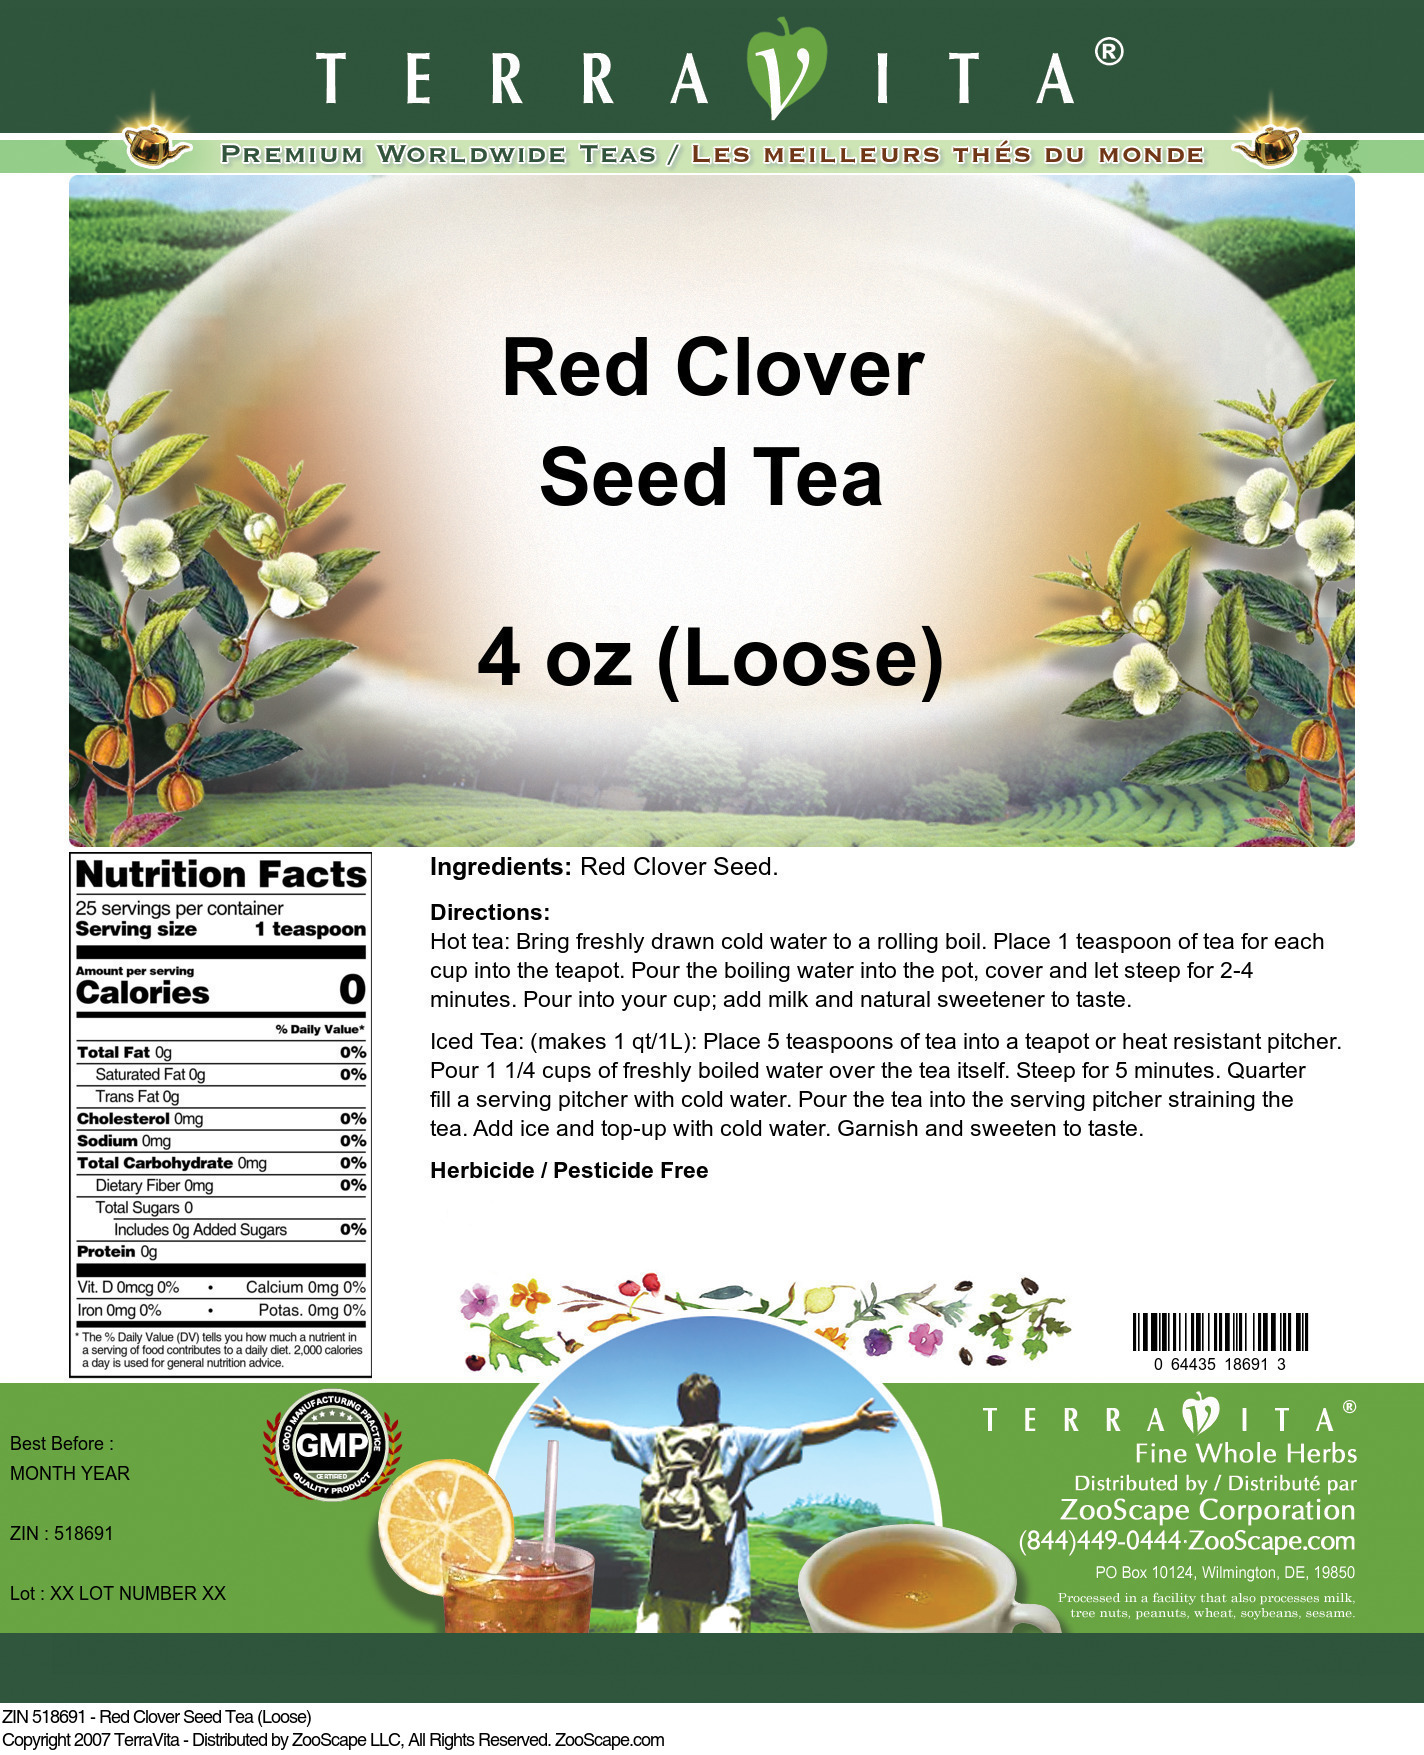 Red Clover Seed Tea (Loose)